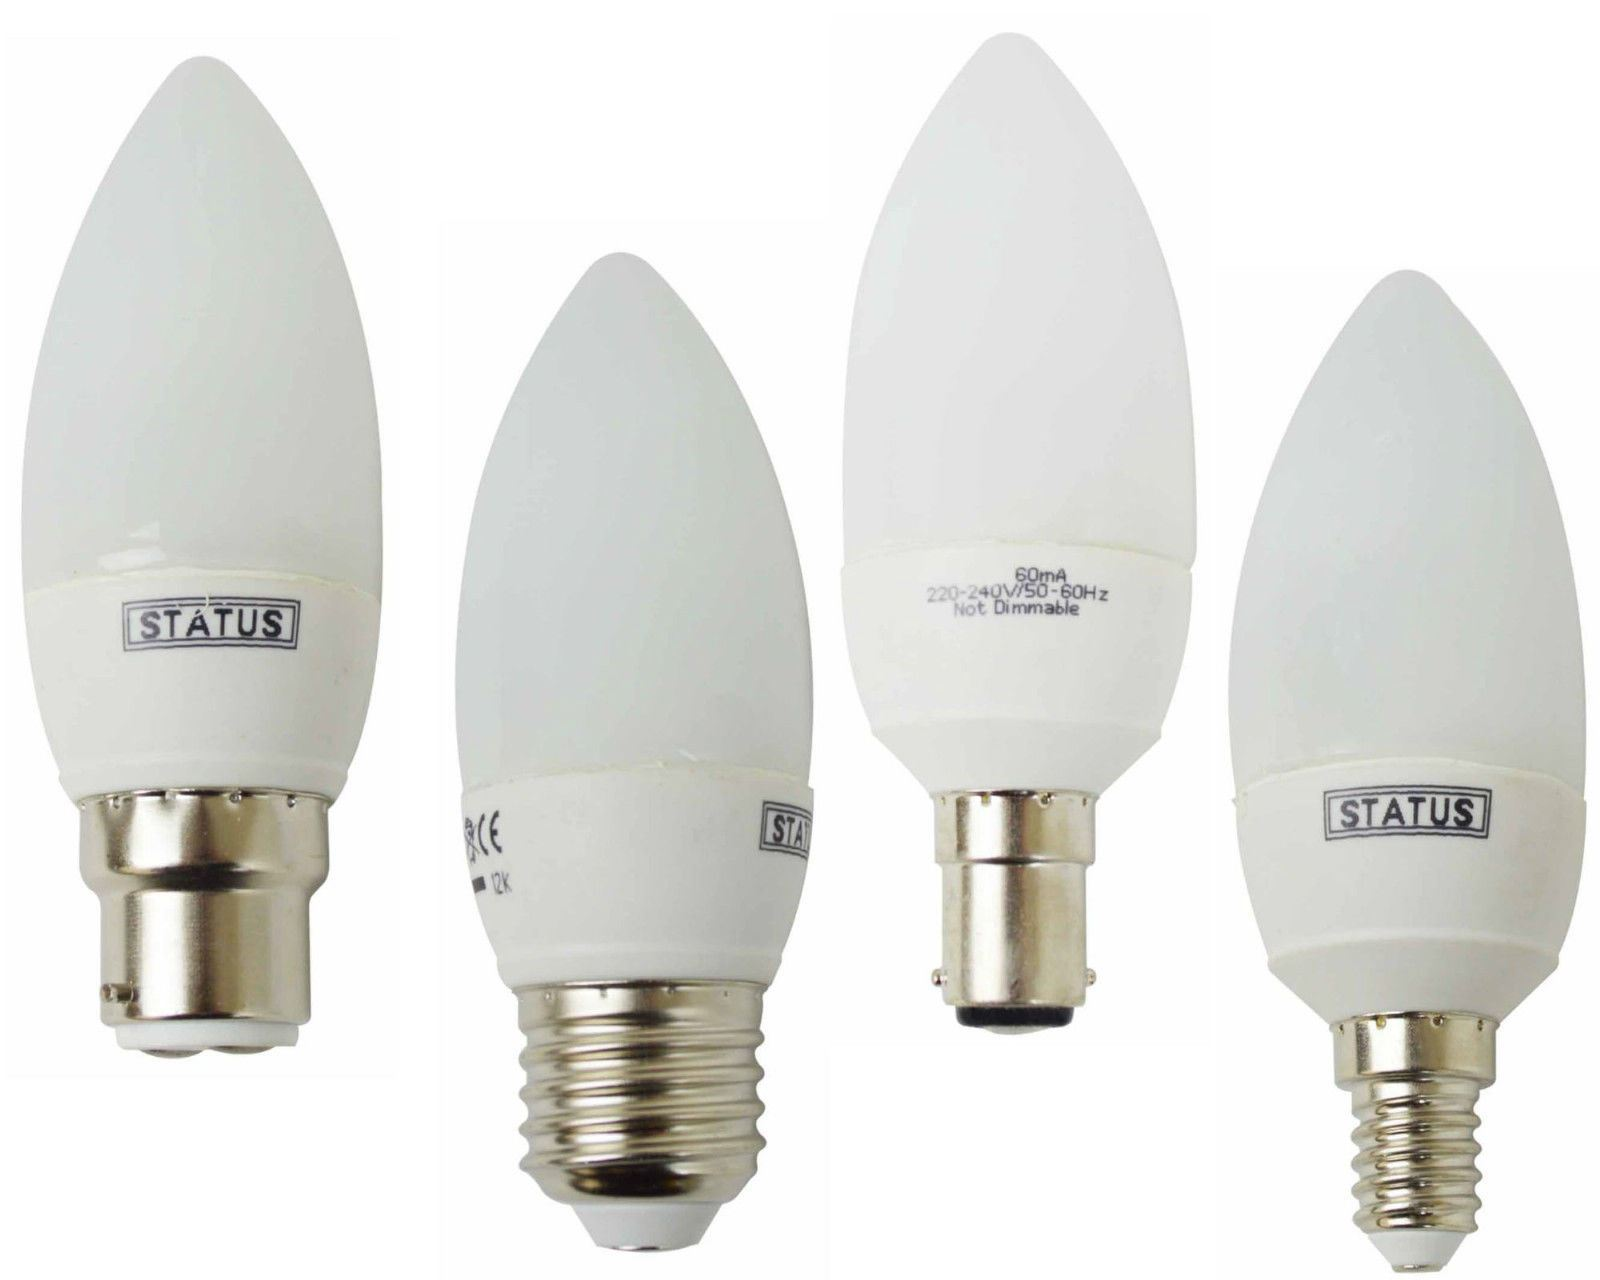 Cfl Candle Low Energy Saving Light Bulbs Long Life Lamps E27 B22 E14 B15 Ebay